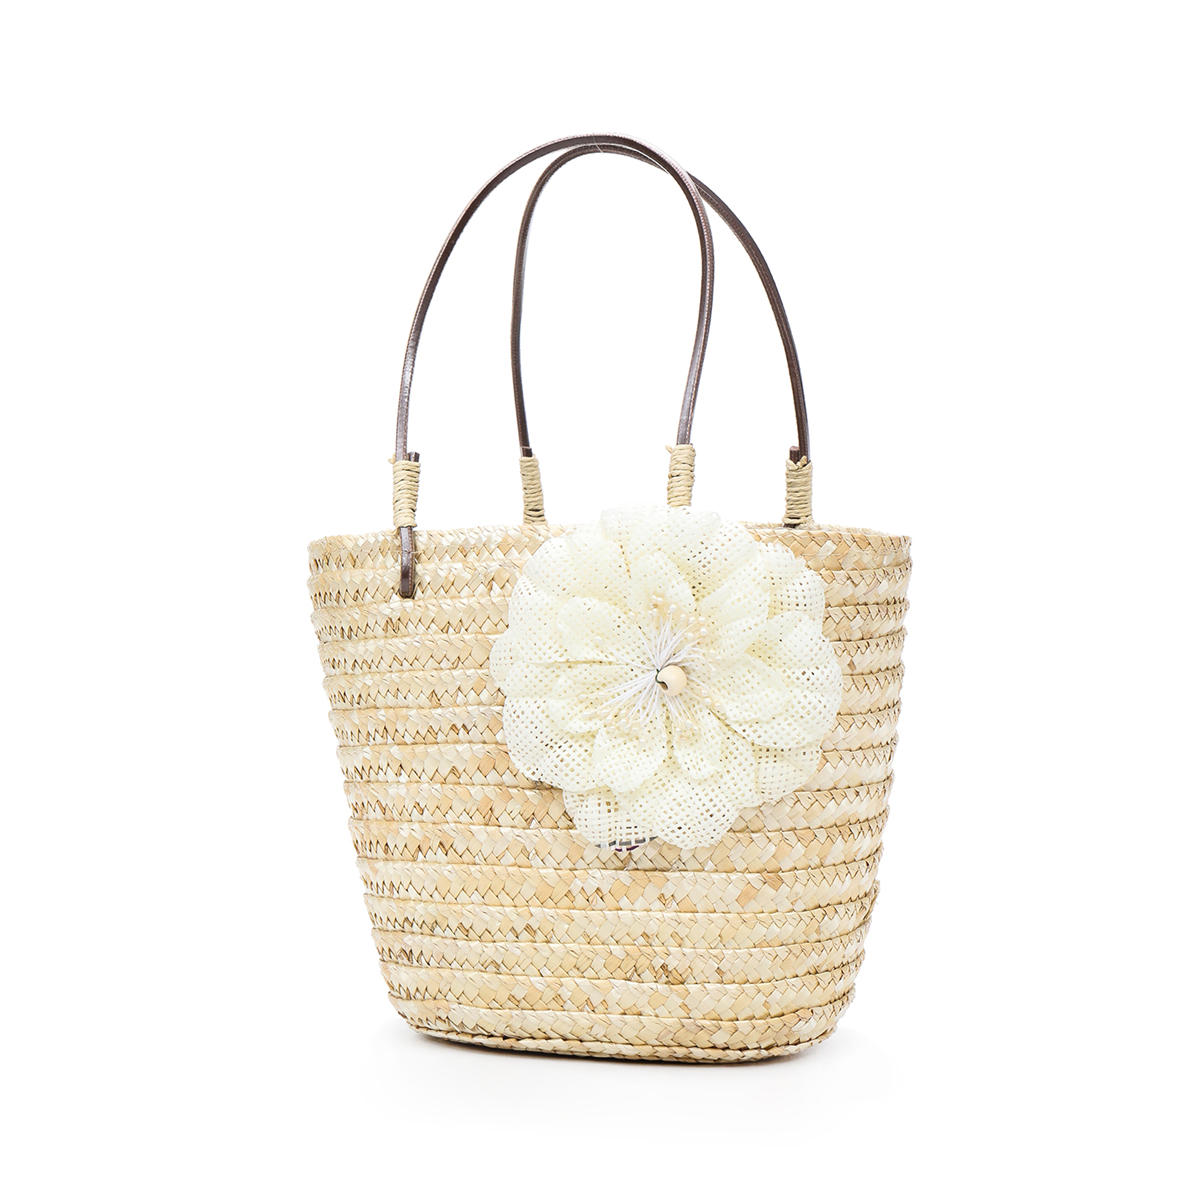 5L Women Straw Bag Woven Beach Handbag Shoulder Tote Outdoor Travel